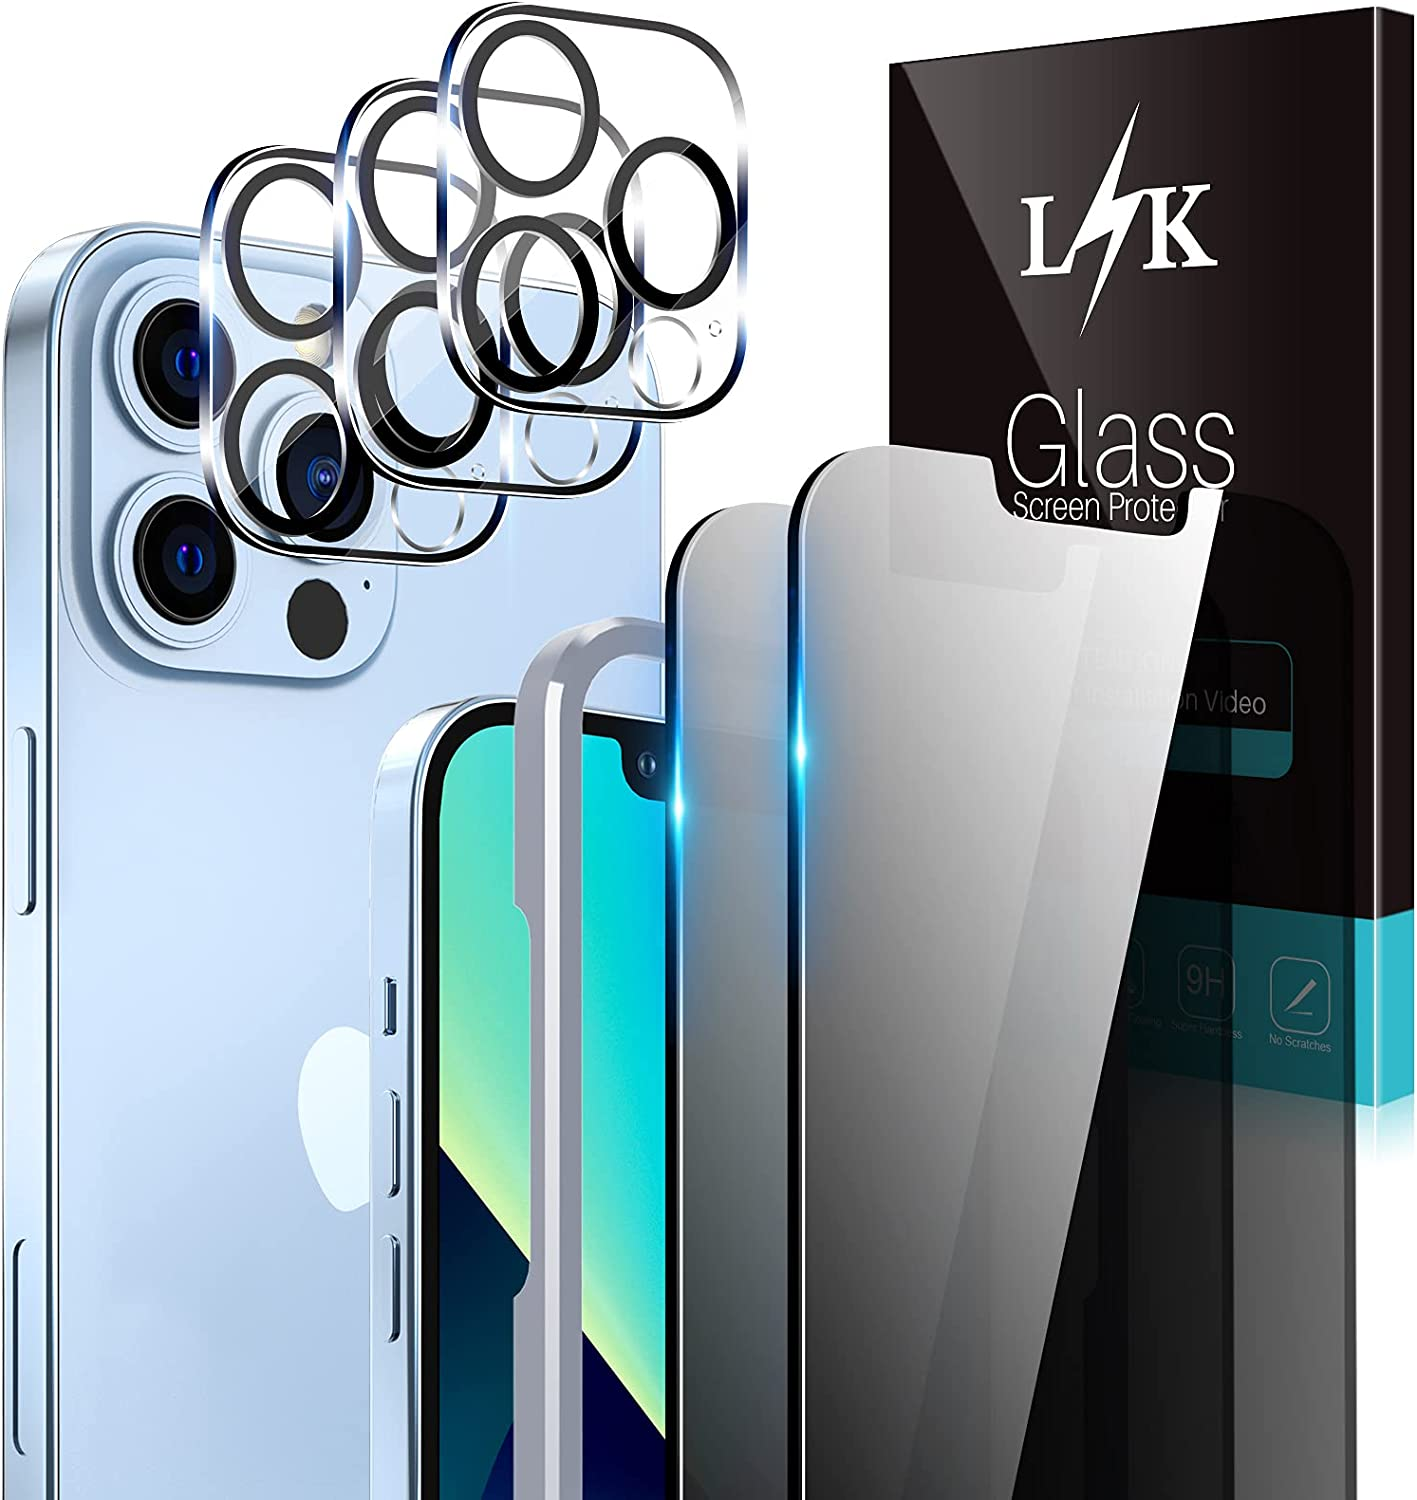 LϟK 2 Pack Privacy Screen Protector Compatible for iPhone 13 Pro 5G 6.1 inch with 3 Pack Camera Lens Protector [Not for iPhone 13] Tempered Glass Film, Case Friendly, Installation Tray